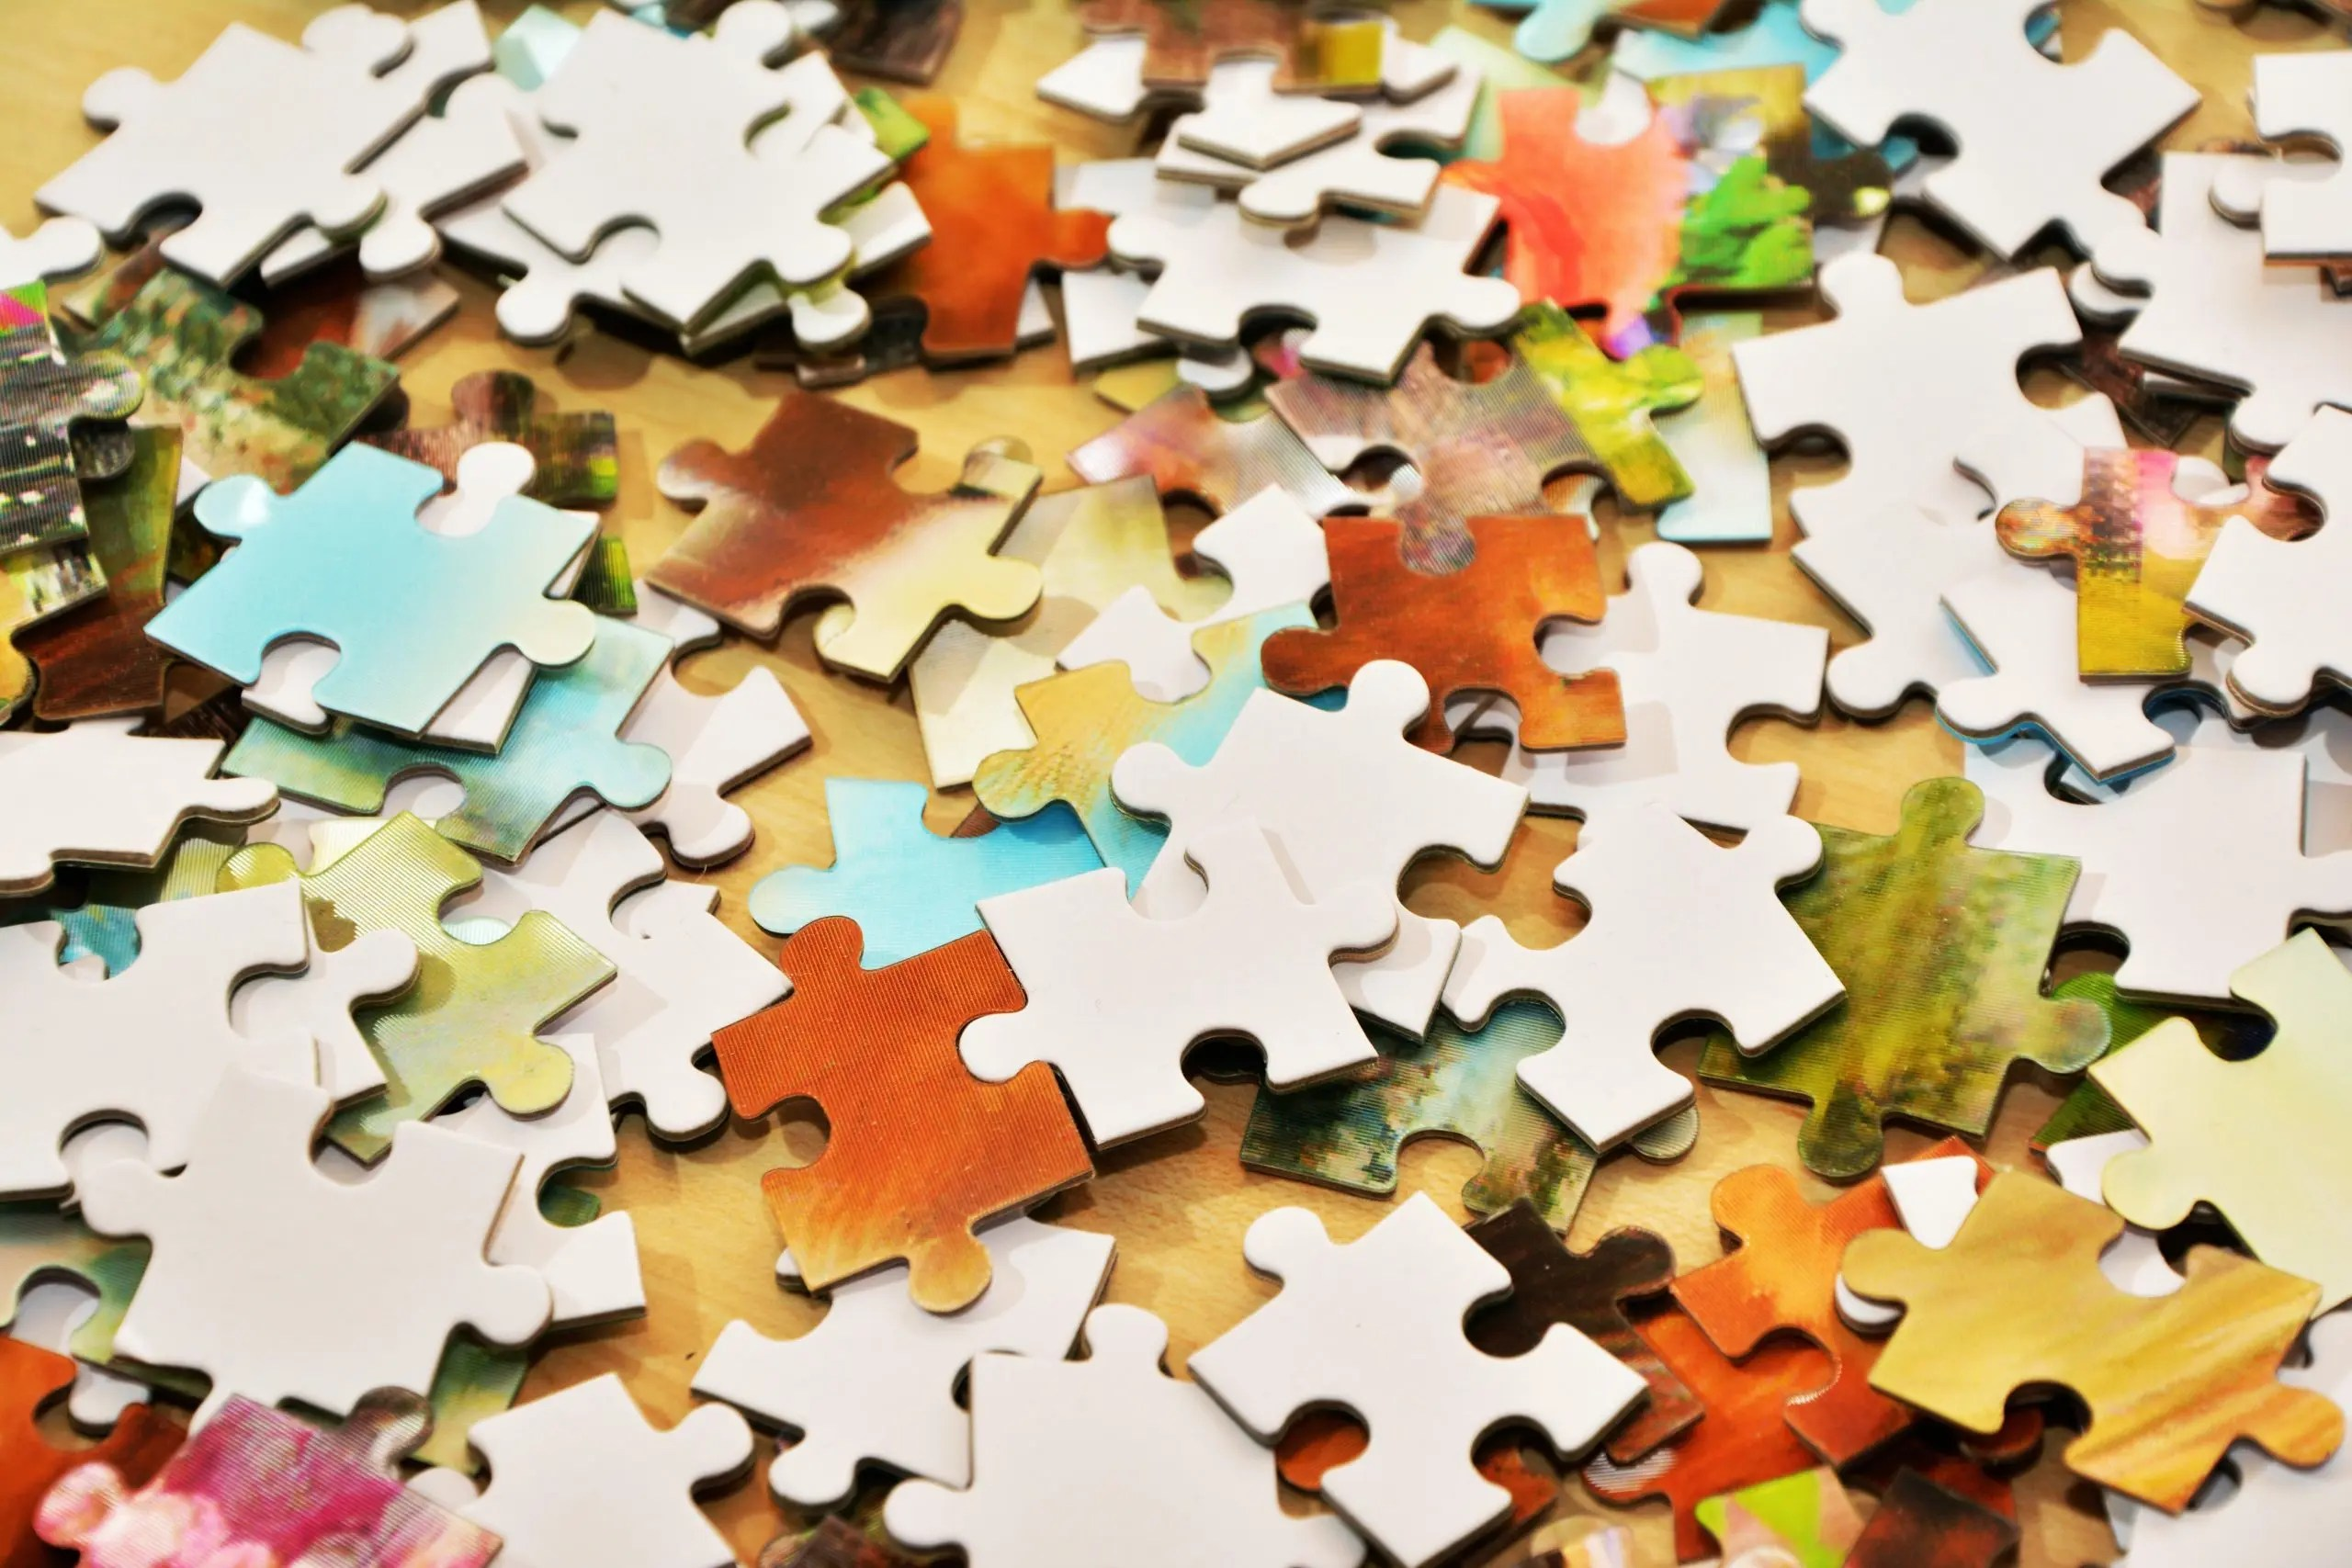 Image of a pile of puzzle pieces symbolizing touch problems